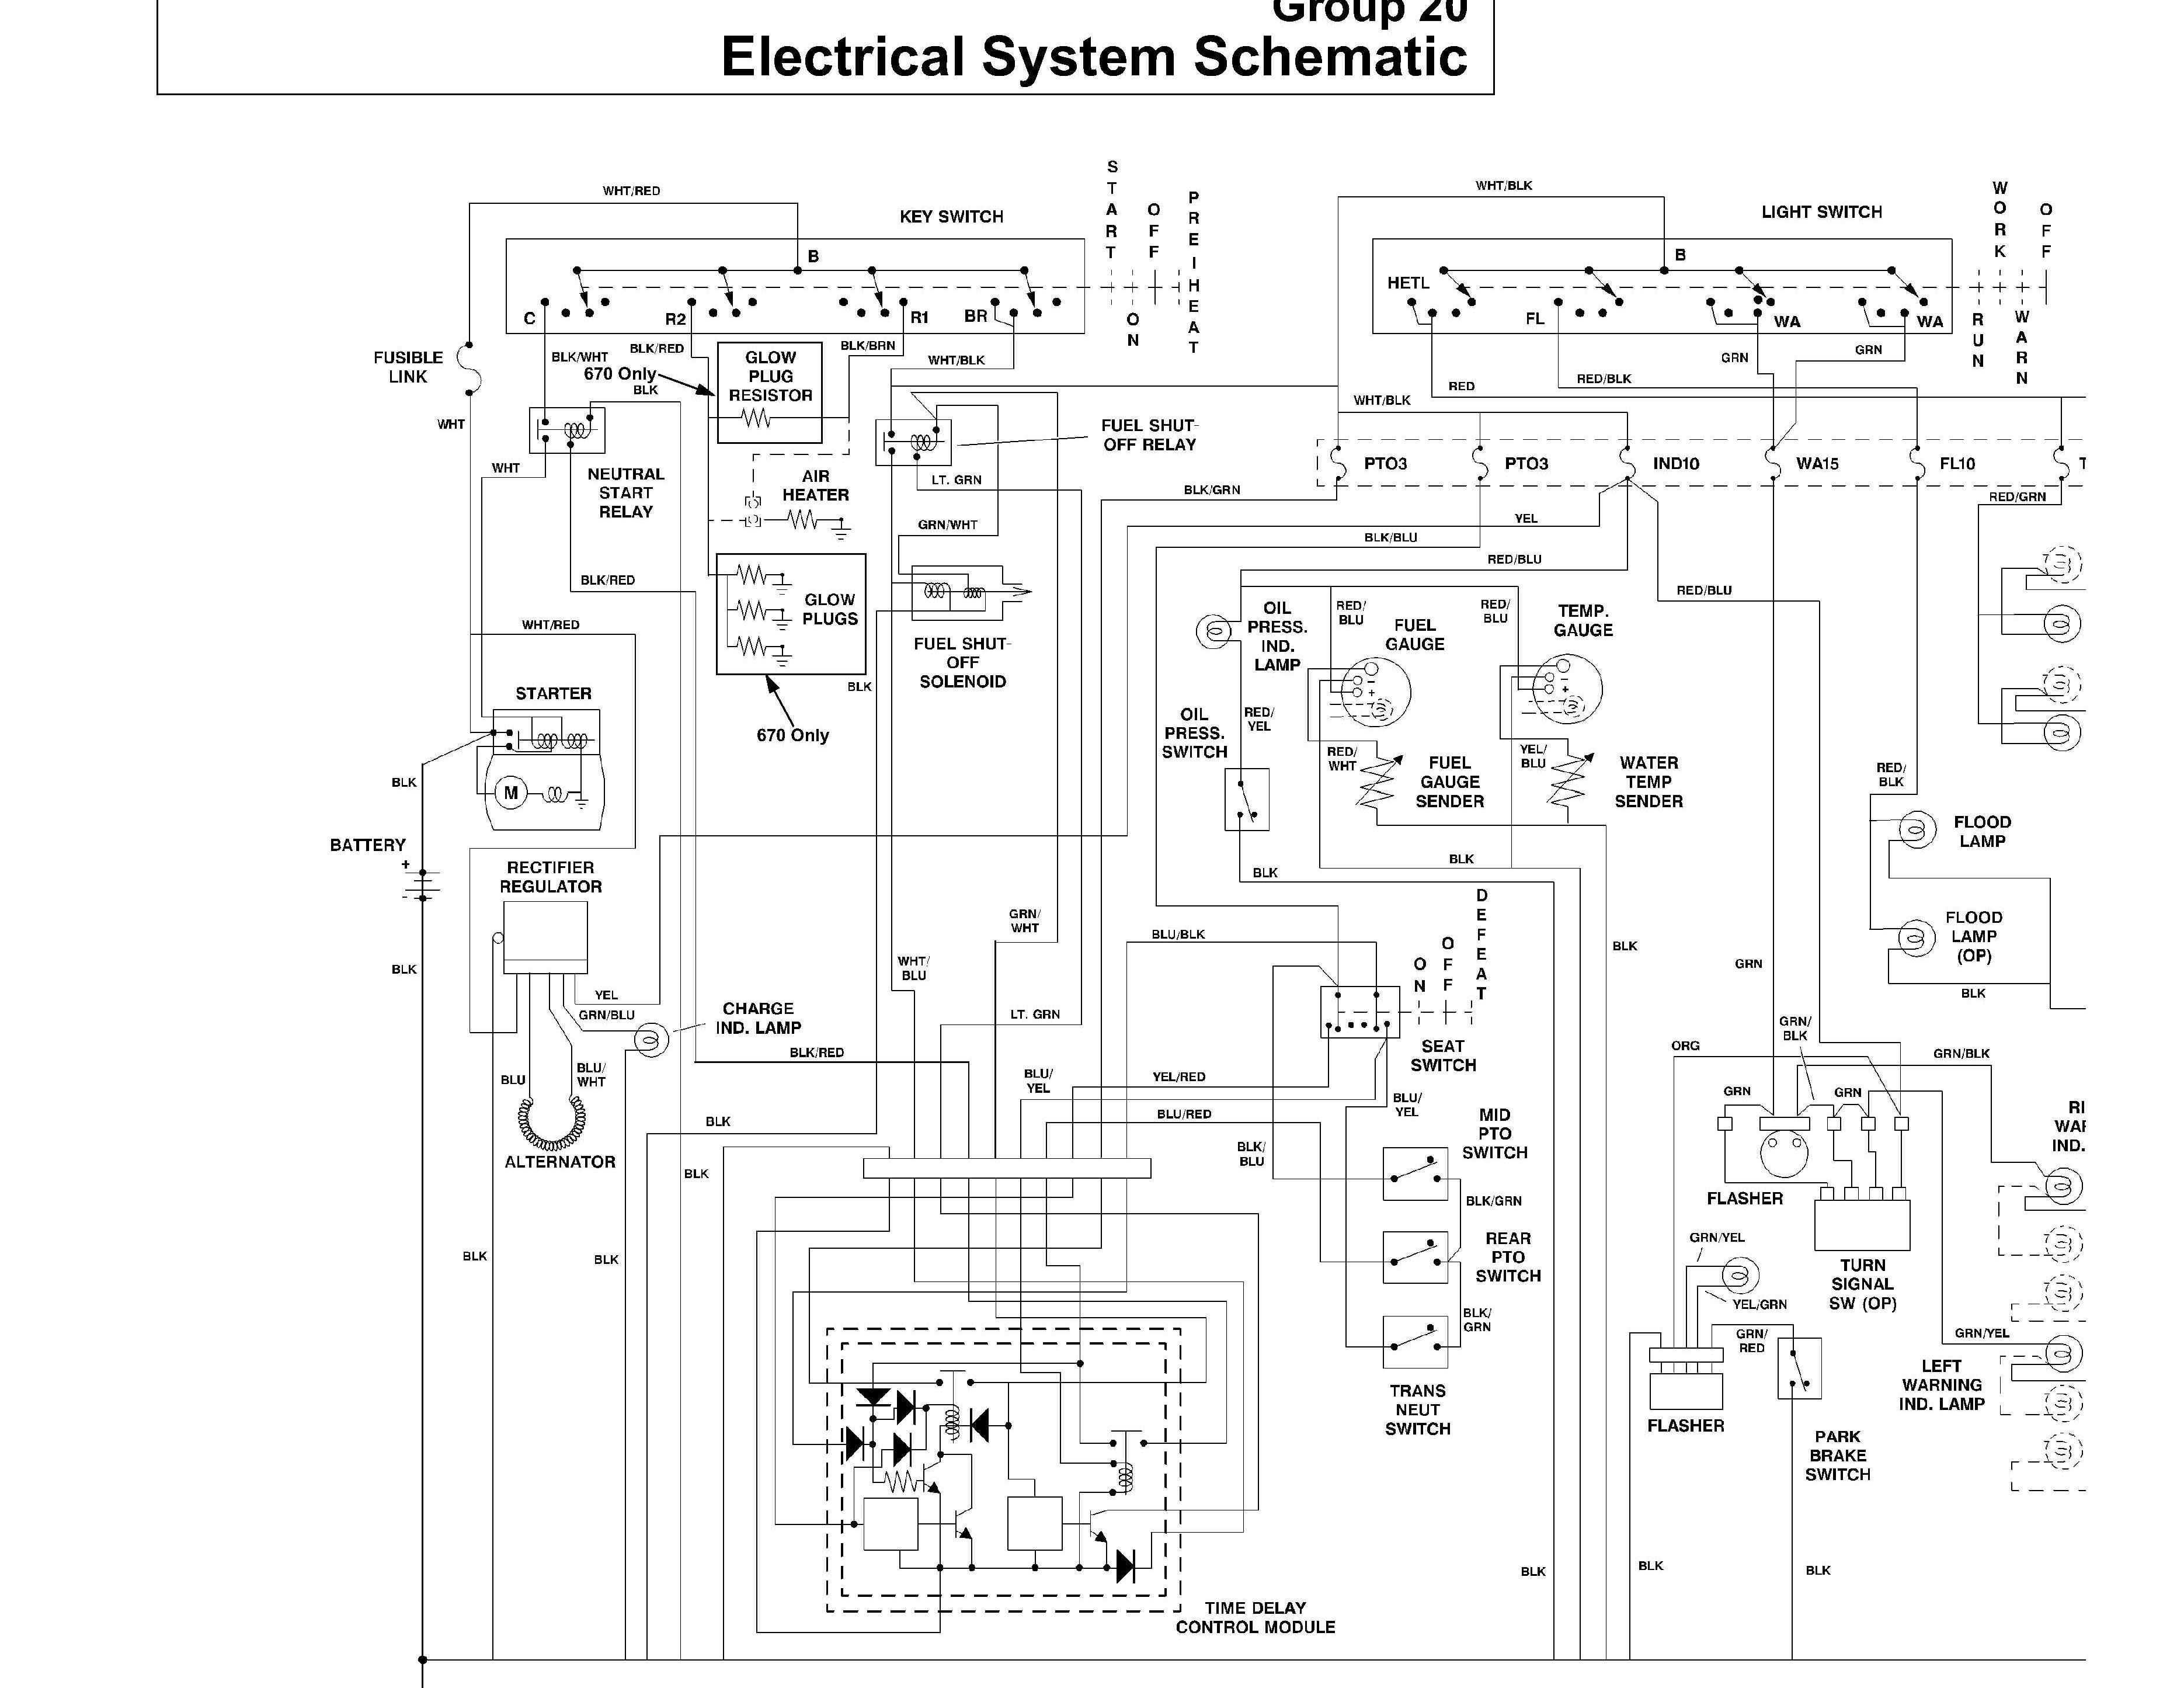 Jd 120c John Deere Wiring Diagram | Wiring Diagram John Deere Wiring Diagram on john deere 4320 crankshaft, john deere 4320 engine, john deere z225 wiring-diagram, john deere 180 wiring-diagram, john deere 455 wiring-diagram, john deere 4320 service manual, john deere 4320 battery, john deere 4320 repair, jd 4020 24 volt wiring diagram, john deere 4320 water pump, john deere 4320 oil filter, john deere 4320 controls diagram, john deere 4320 cab tractor, john deere 445 wiring-diagram, john deere 1020 wiring-diagram, john deere 4320 specifications, john deere 4320 flywheel, john deere 4320 parts, john deere 4300 wiring-diagram, john deere 265 wiring schematic,